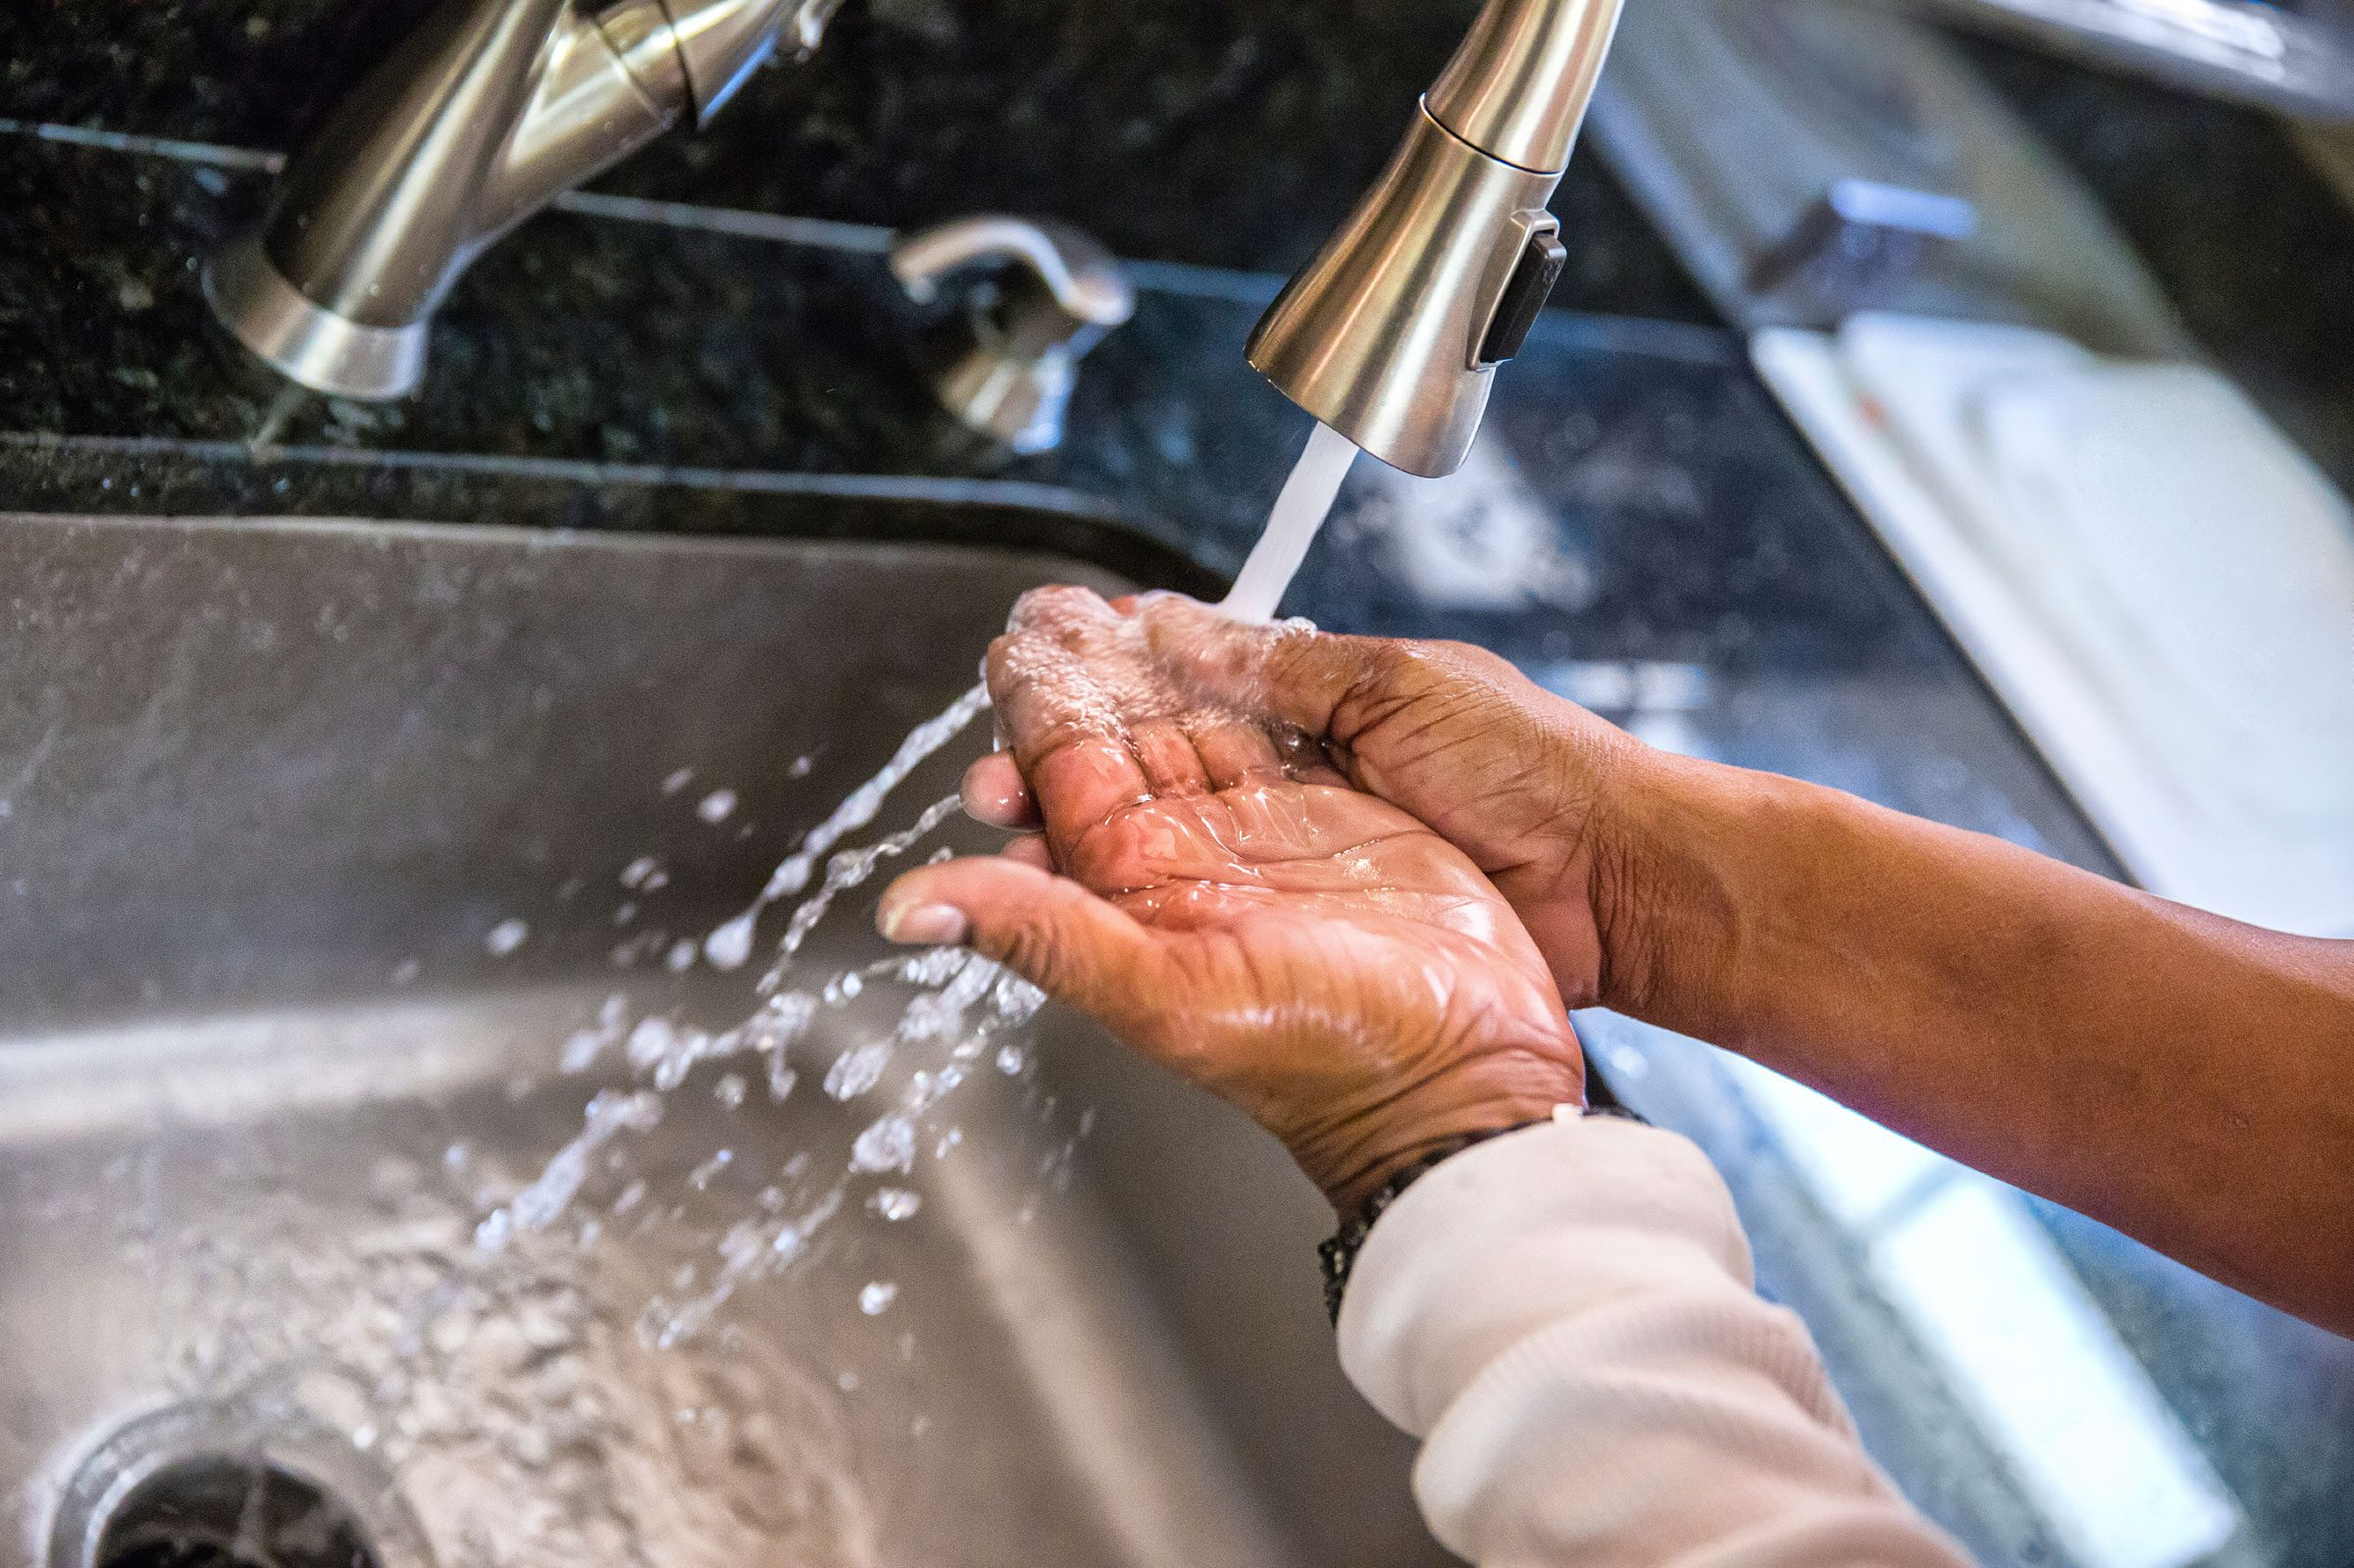 hand washing mistakes nooks and crannies